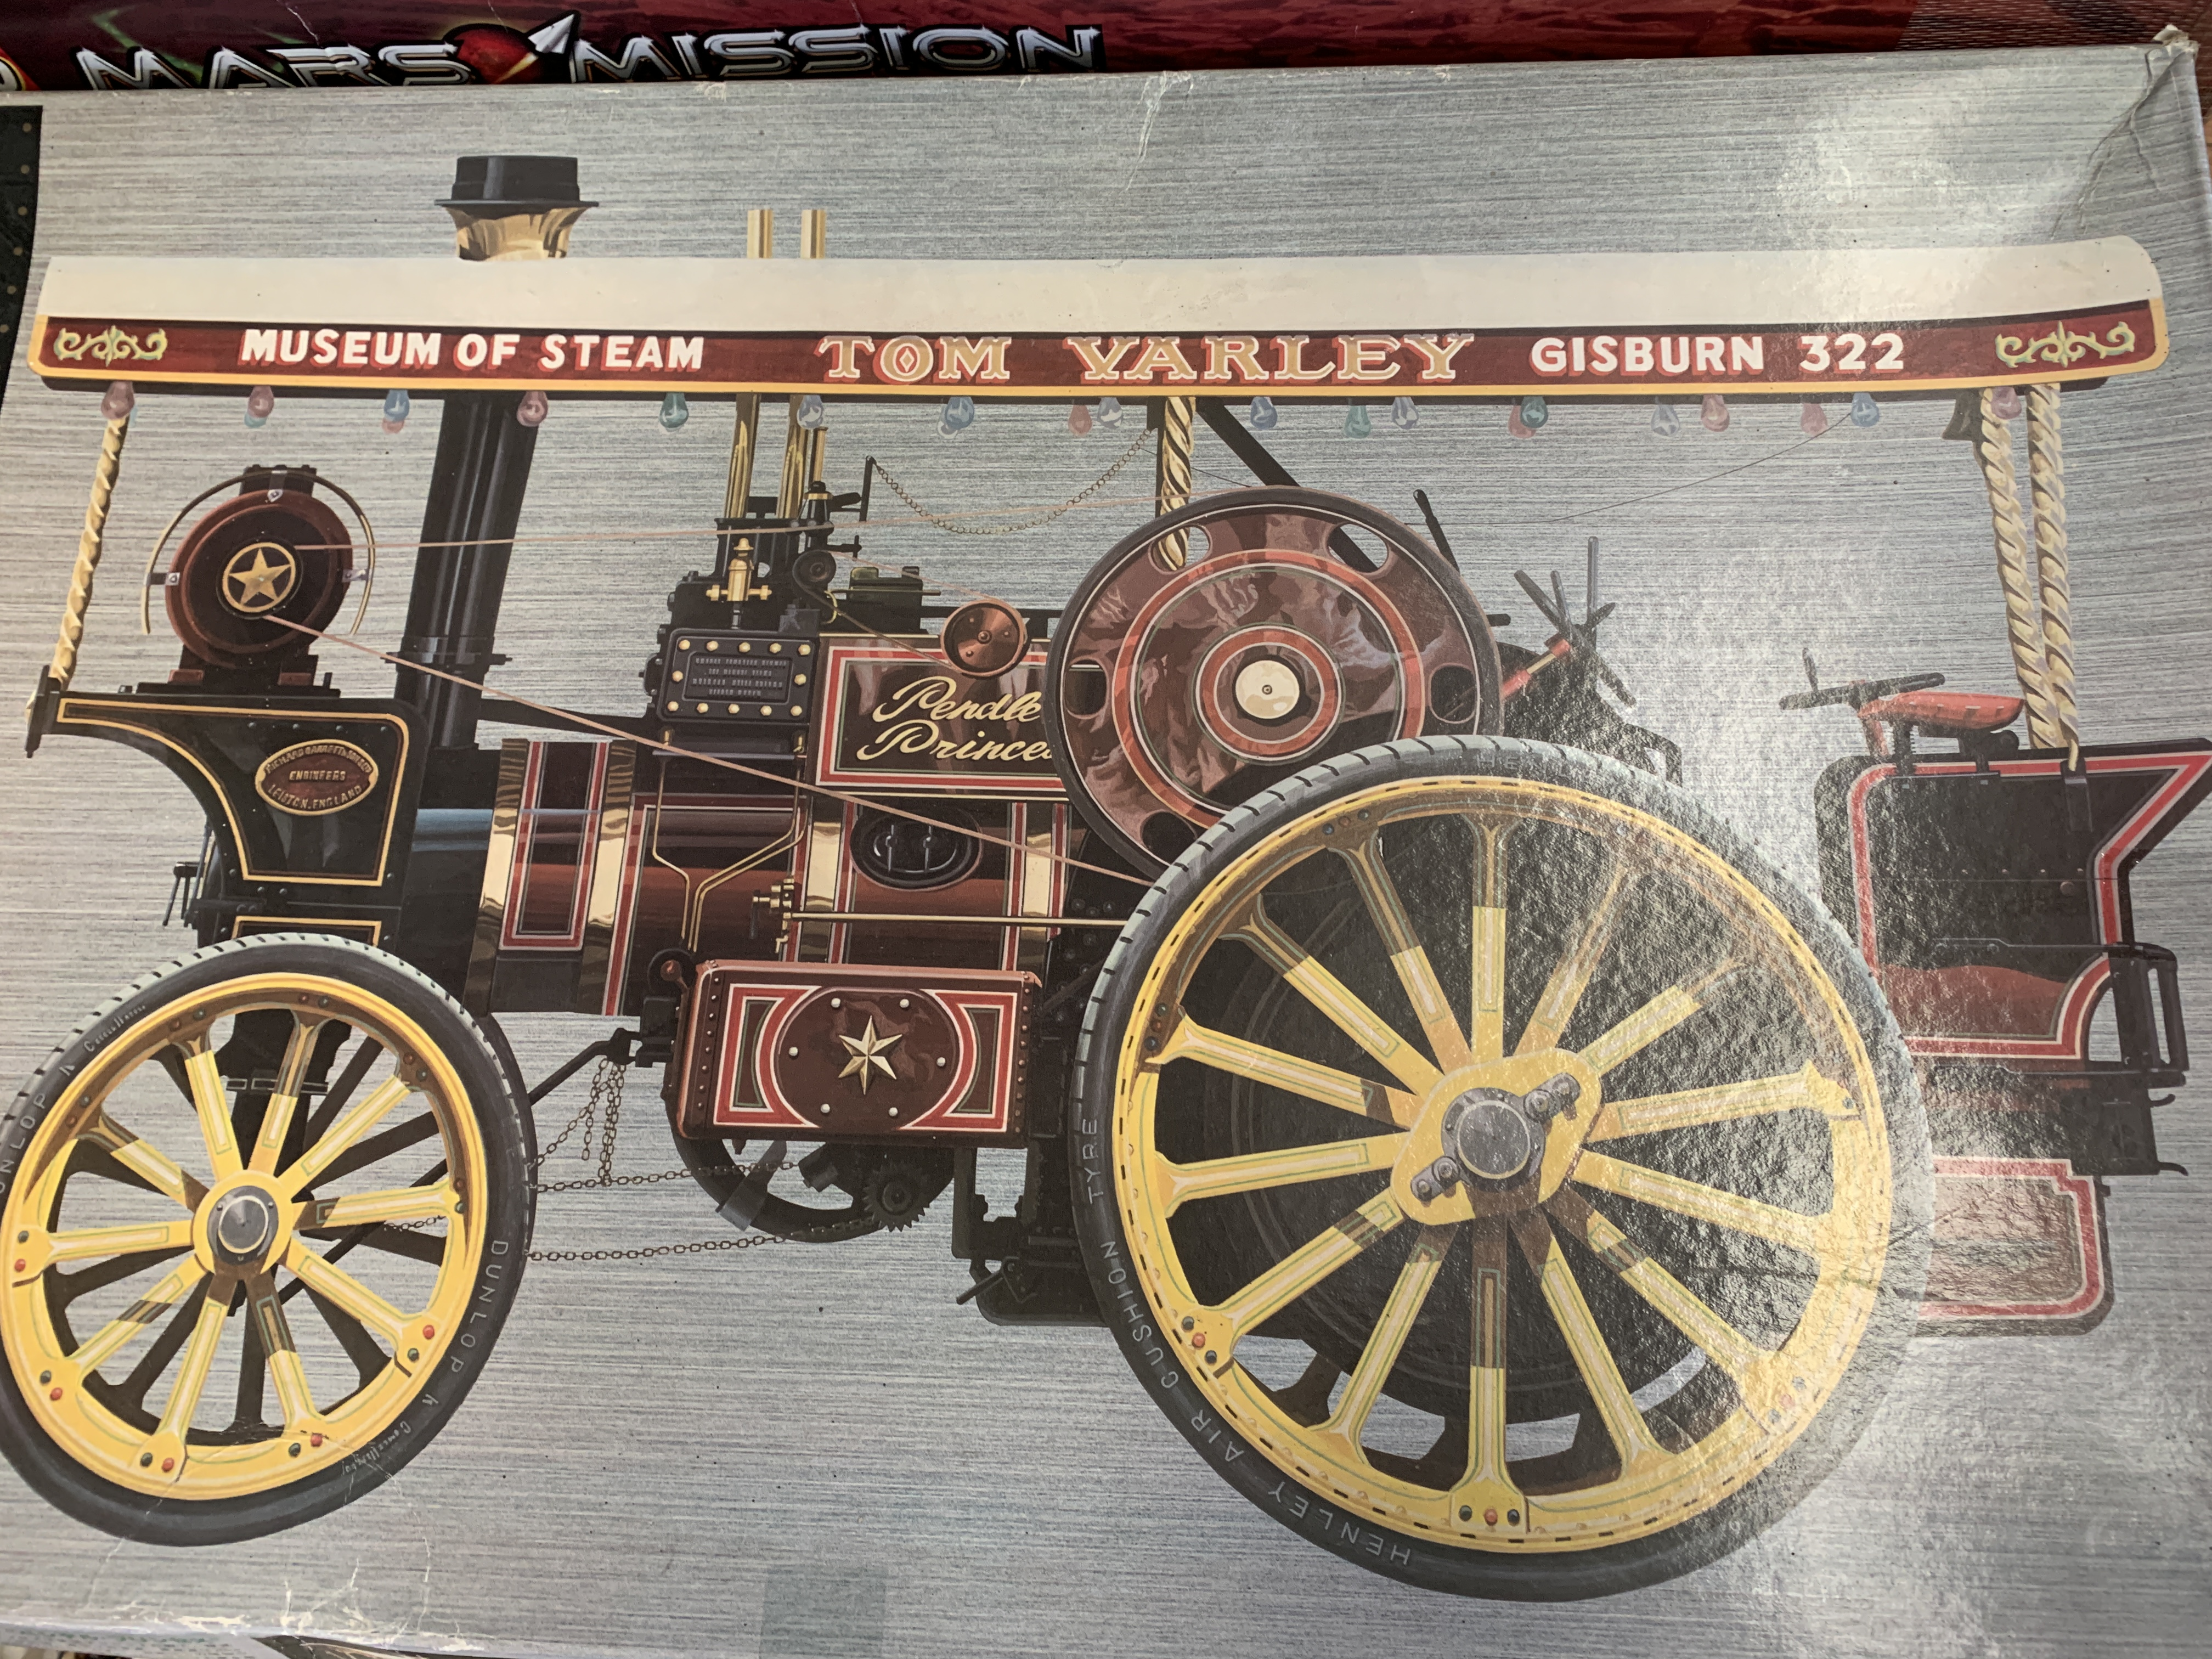 A Bandai model steam traction engine